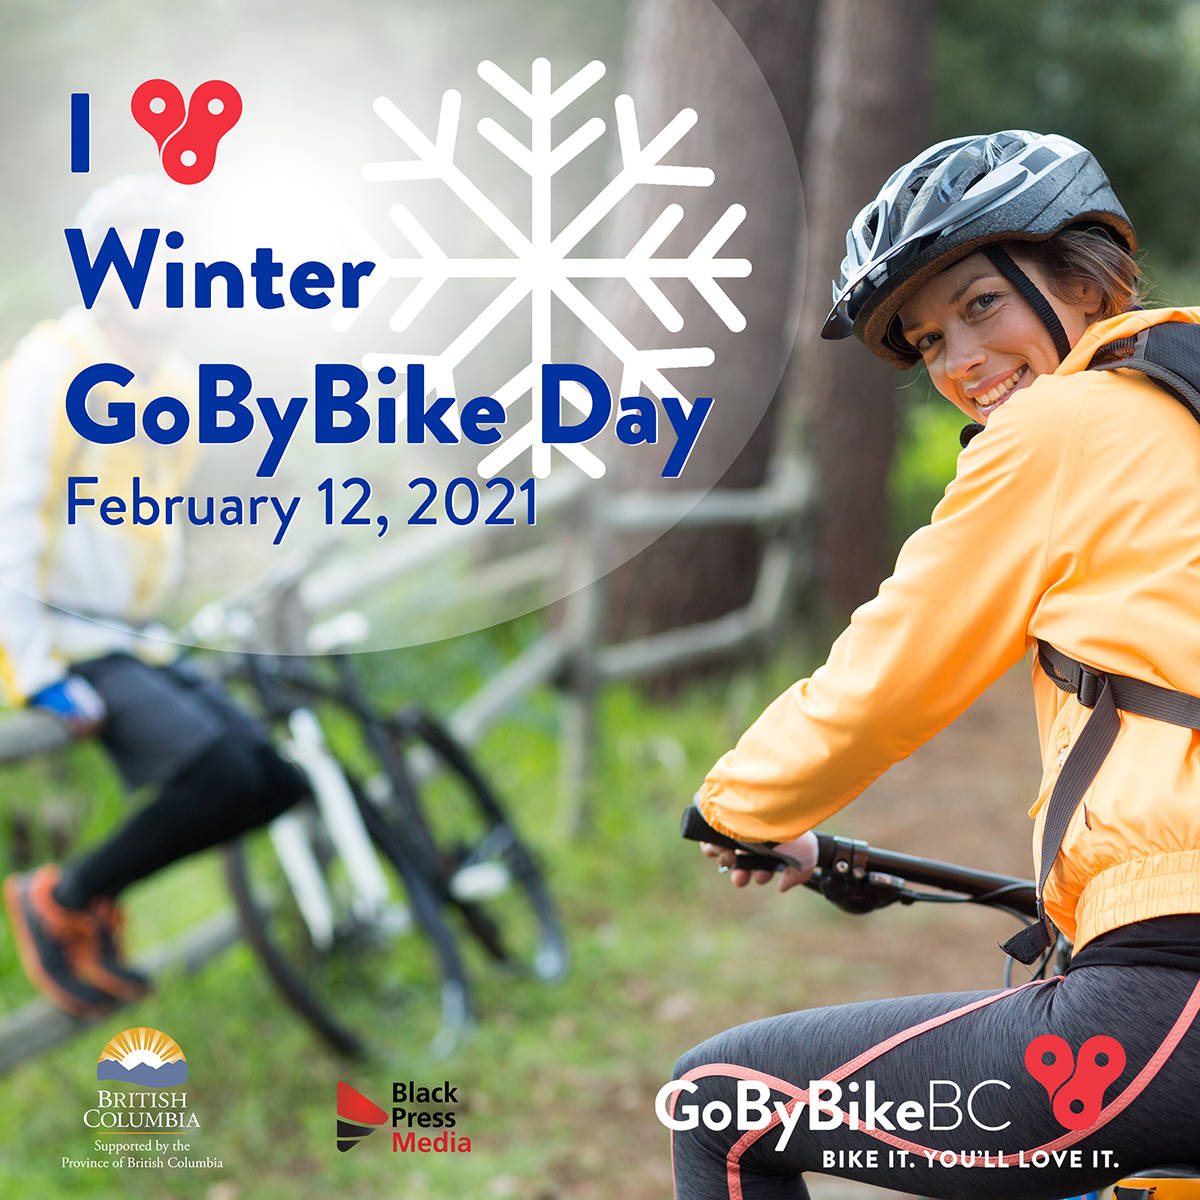 Register now for Winter GoByBike BC Day, then go for a ride on Feb. 12!